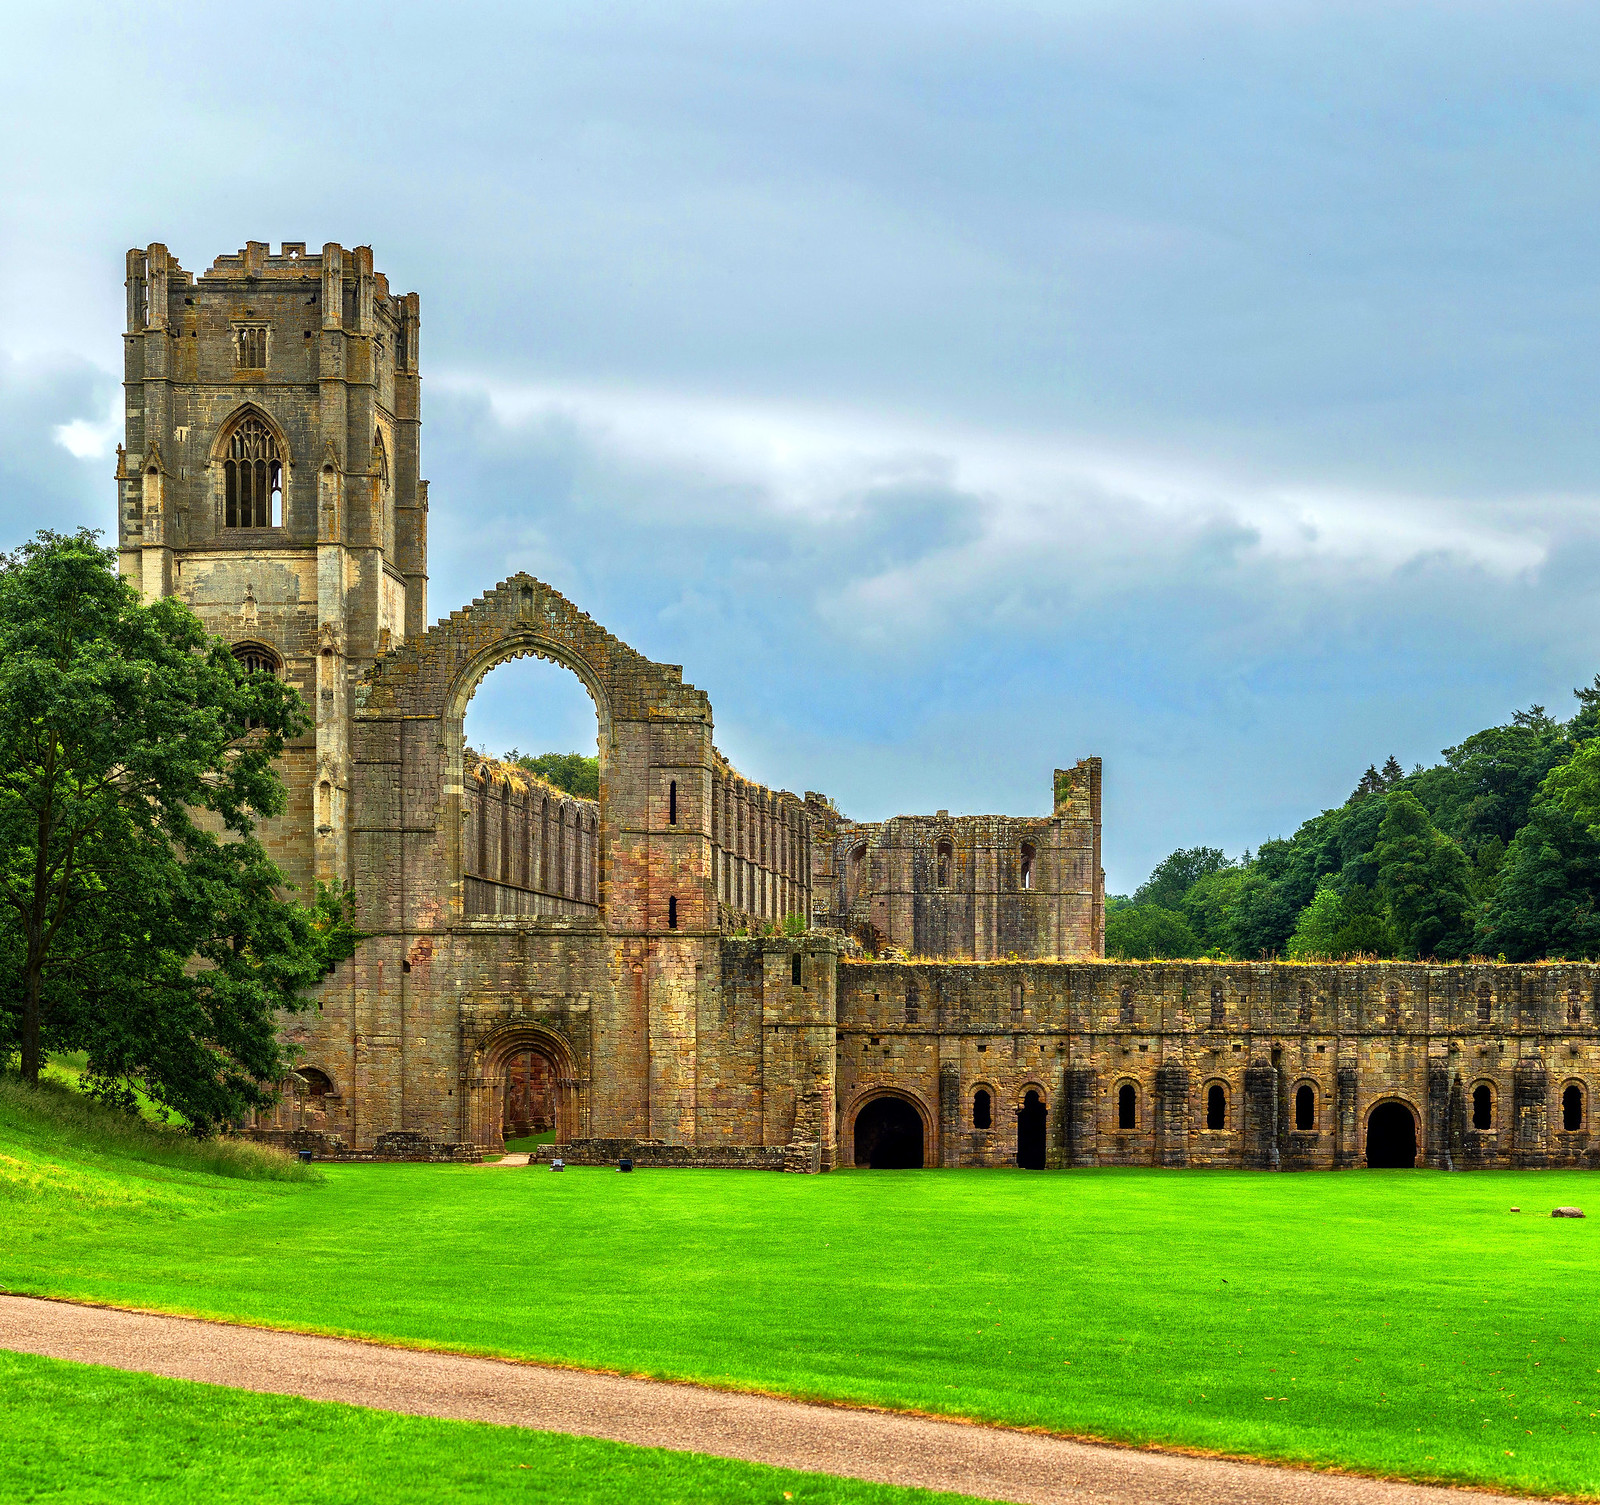 Fountains Abbey. Credit David Iliff